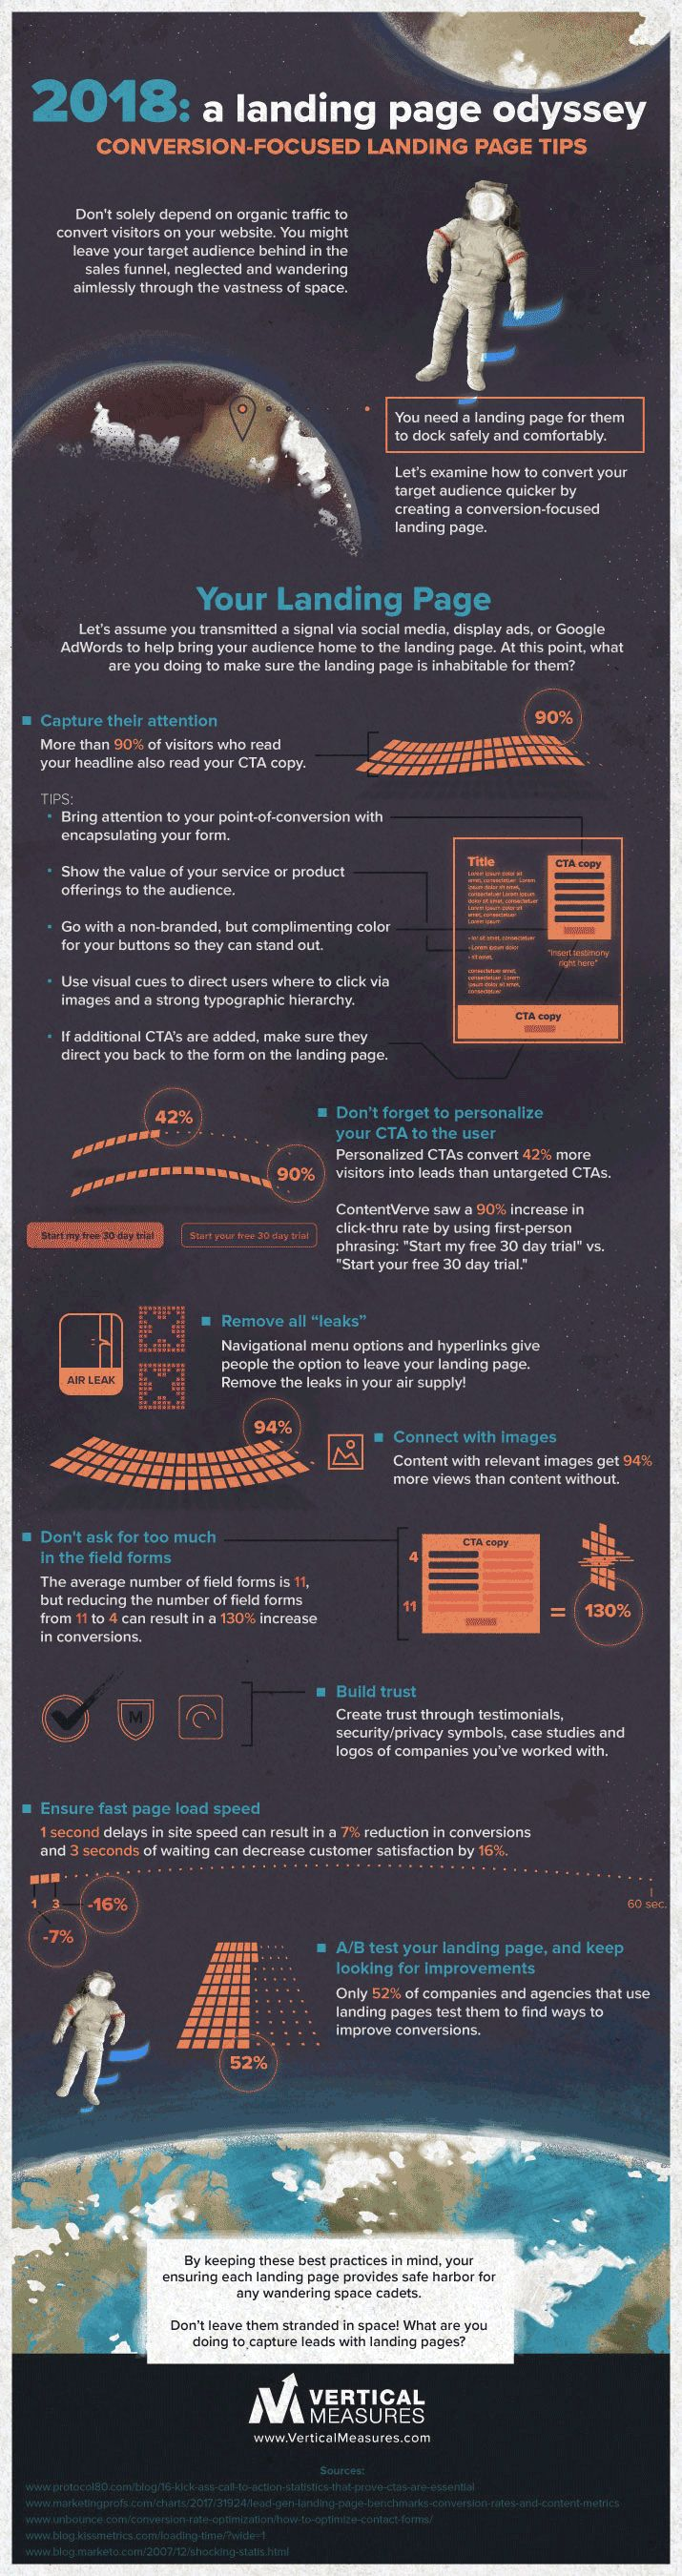 10 Web Design Tips to Convert More Visitors into Customers [#Infographic] #website #landingpages